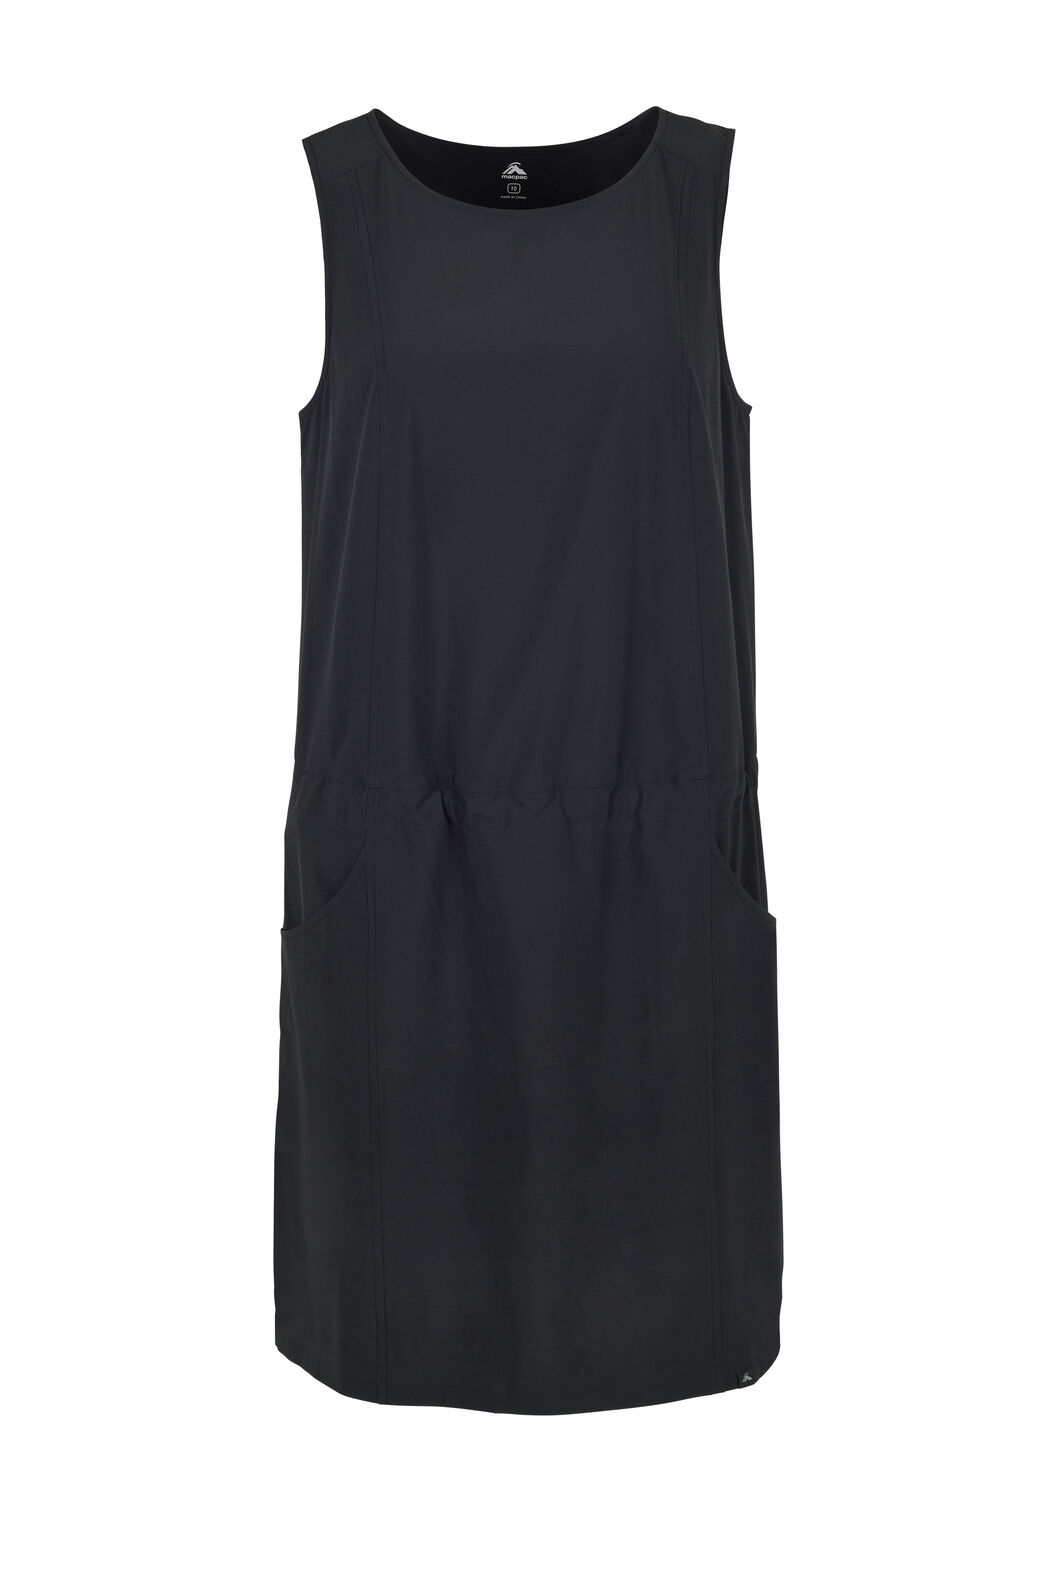 Macpac Mica Dress - Women's, Black, hi-res